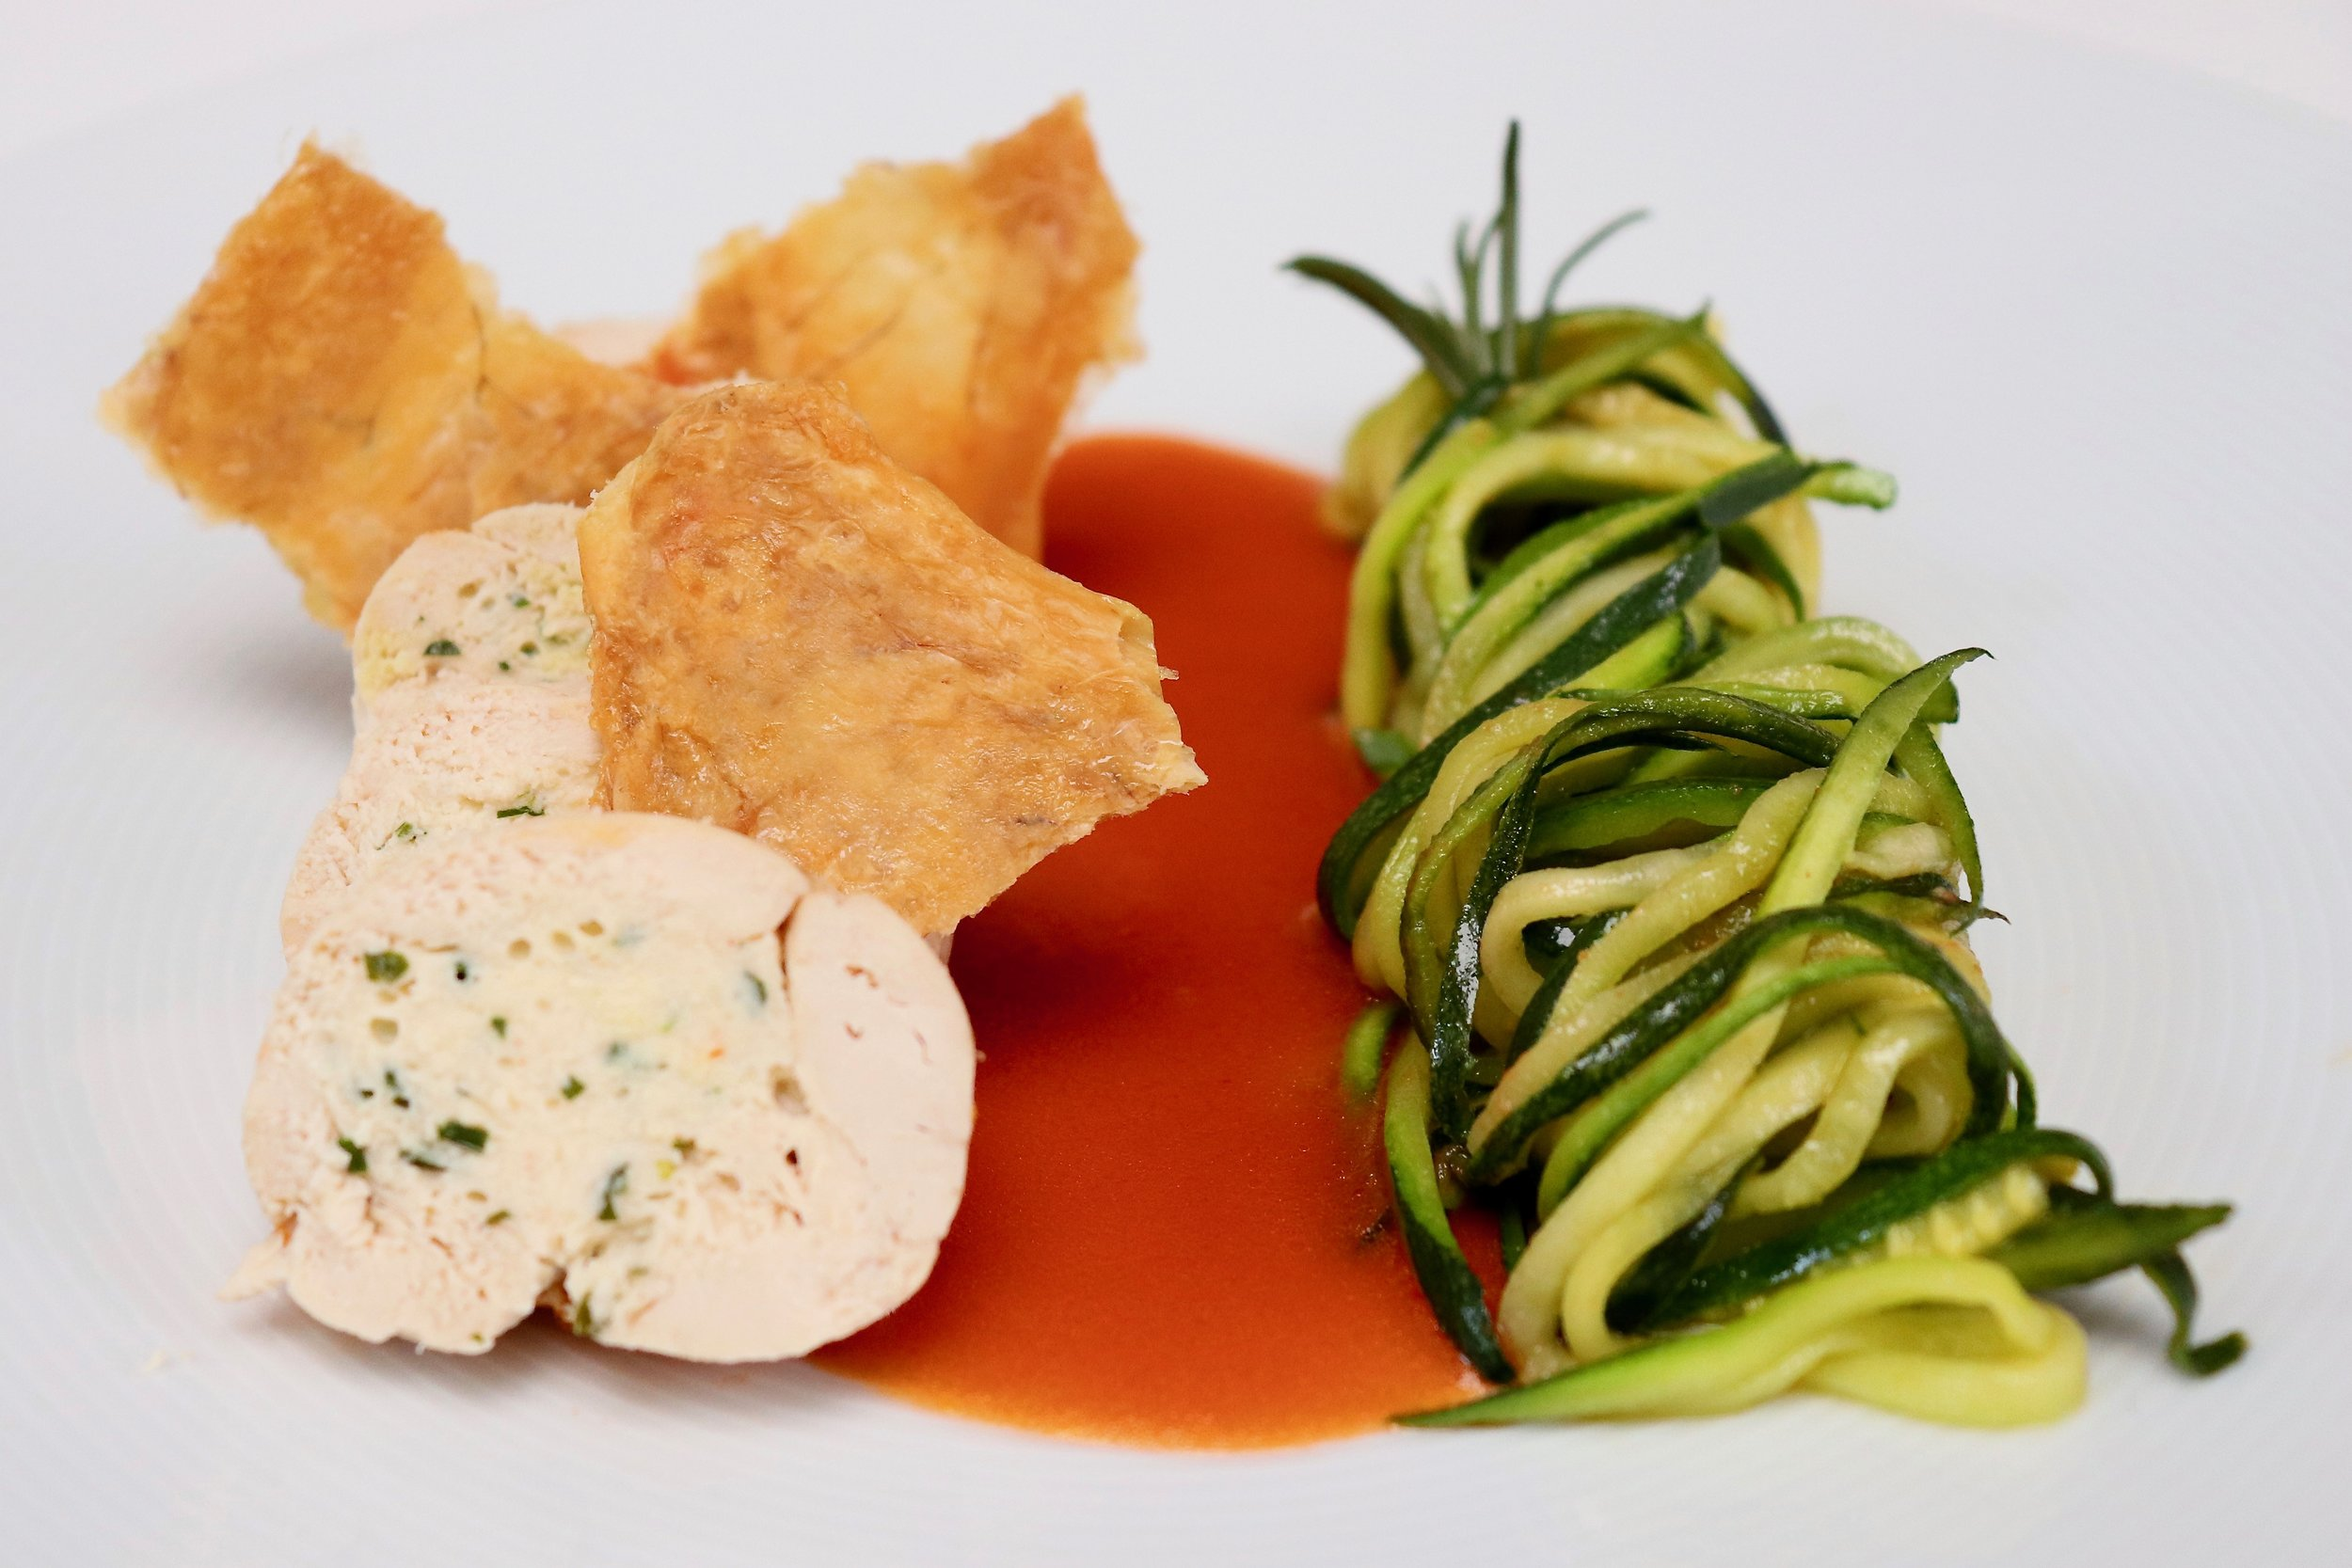 Stuffed supreme of chicken with crispy chicken skin, courgette spaghetti and tomato butter sauce